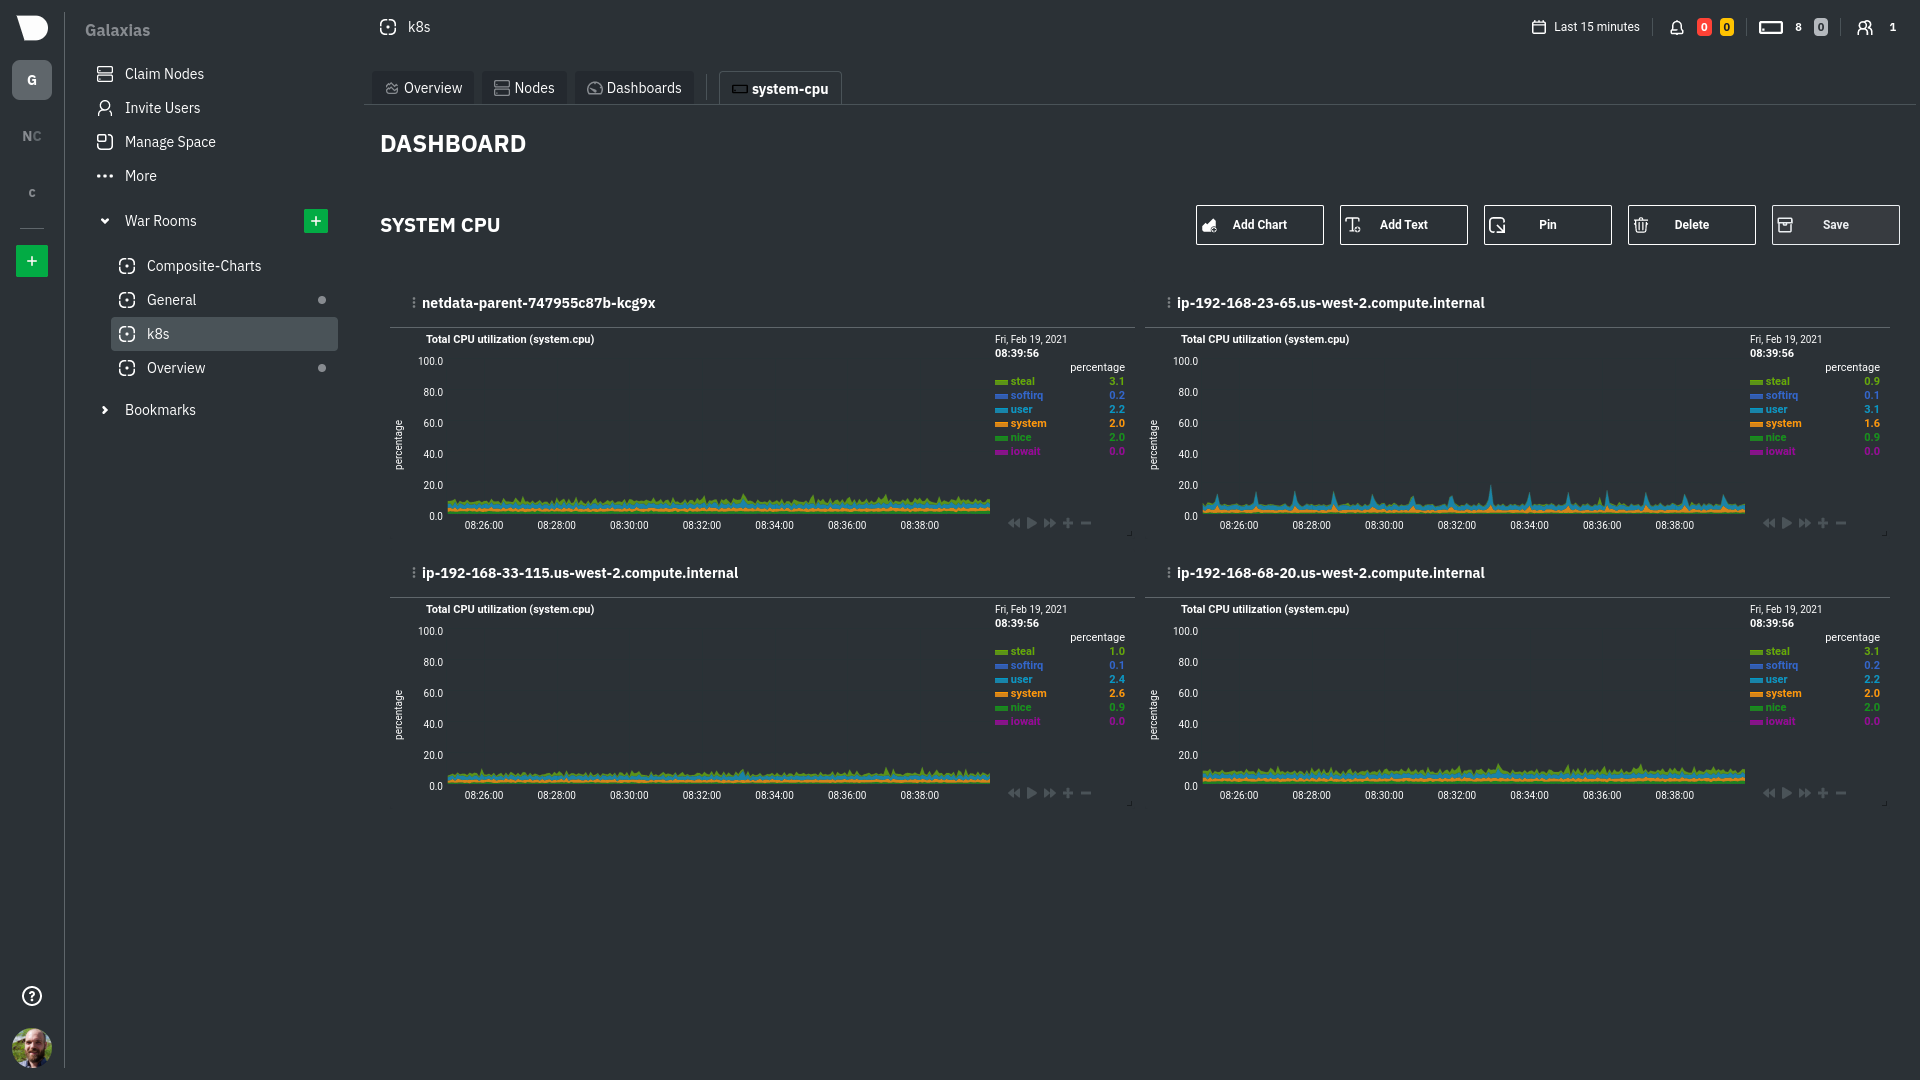 An example multi-node dashboard for system CPU metrics